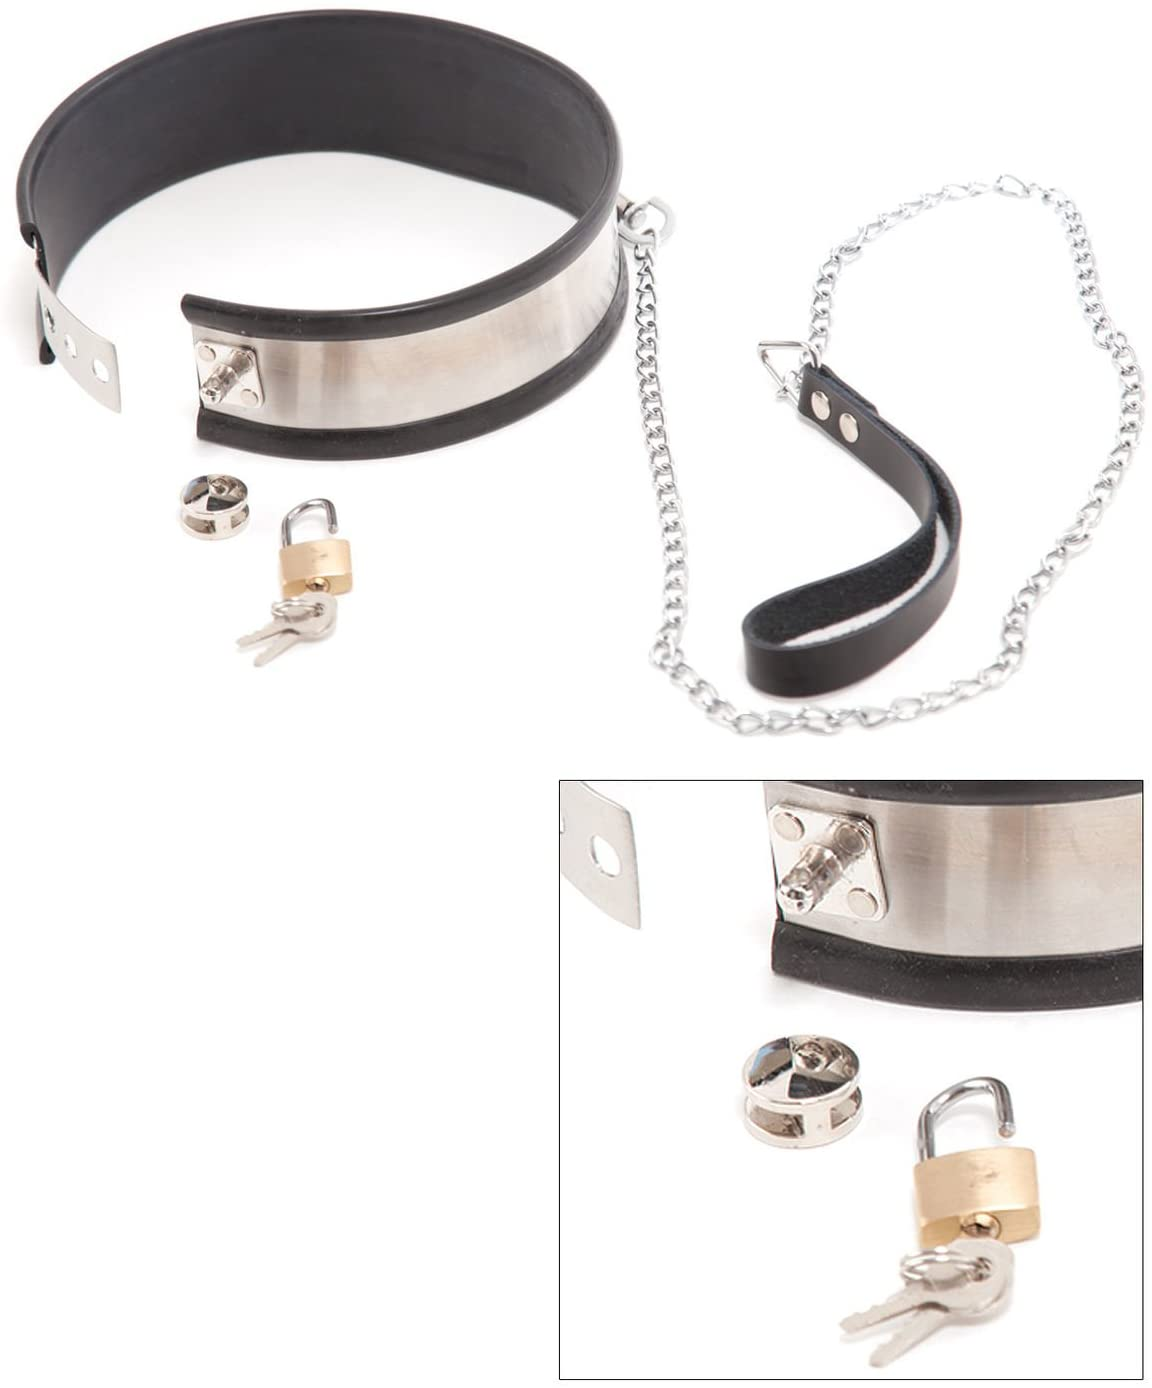 Rapture Novelties Steel Band Collar with Leash (Large)